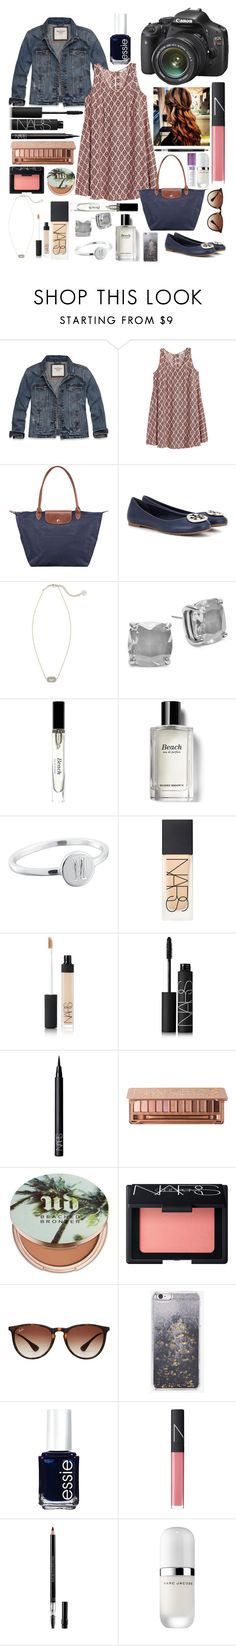 """""""Family Pictures #mattisfallcontest"""" by bowhunter1498702 ❤ liked on Polyvore featuring Abercrombie & Fitch, H&M, Longchamp, Tory Burch, Kendra Scott, Kate Spade, Bobbi Brown Cosmetics, NARS Cosmetics, Urban Decay and Ray-Ban"""